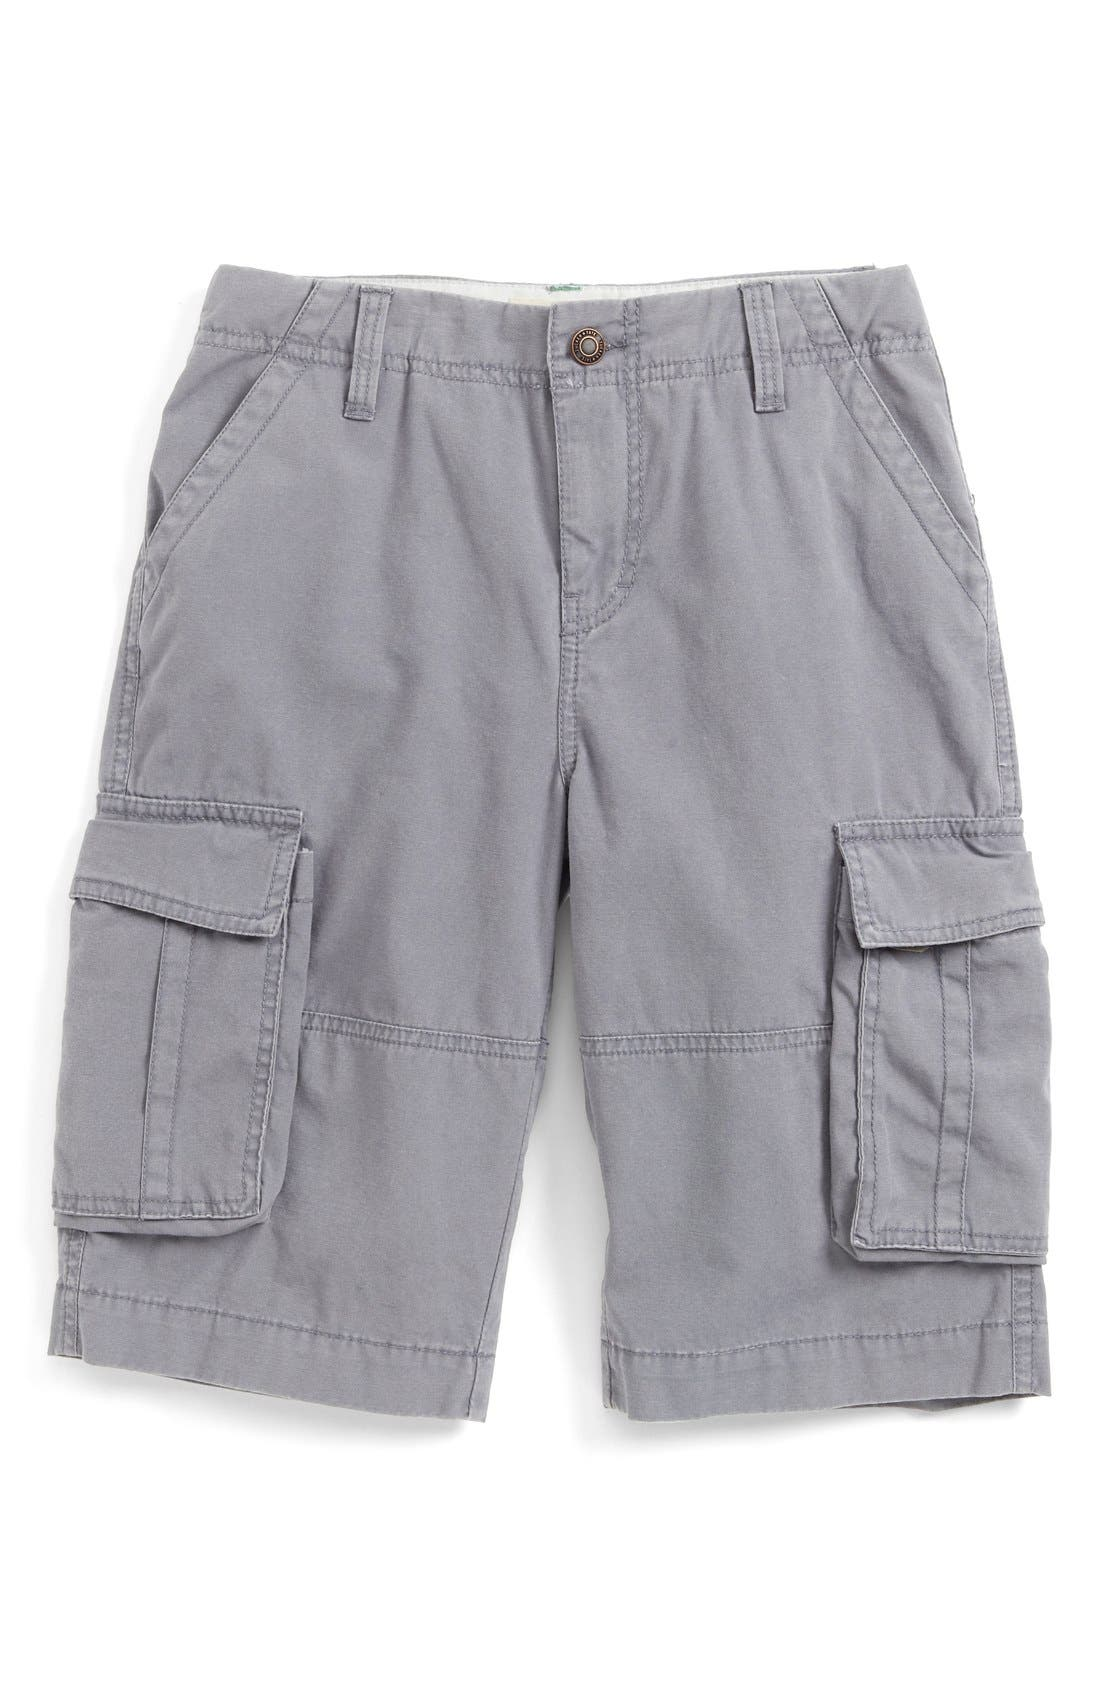 Main Image - Tucker + Tate Cargo Shorts (Little Boys)